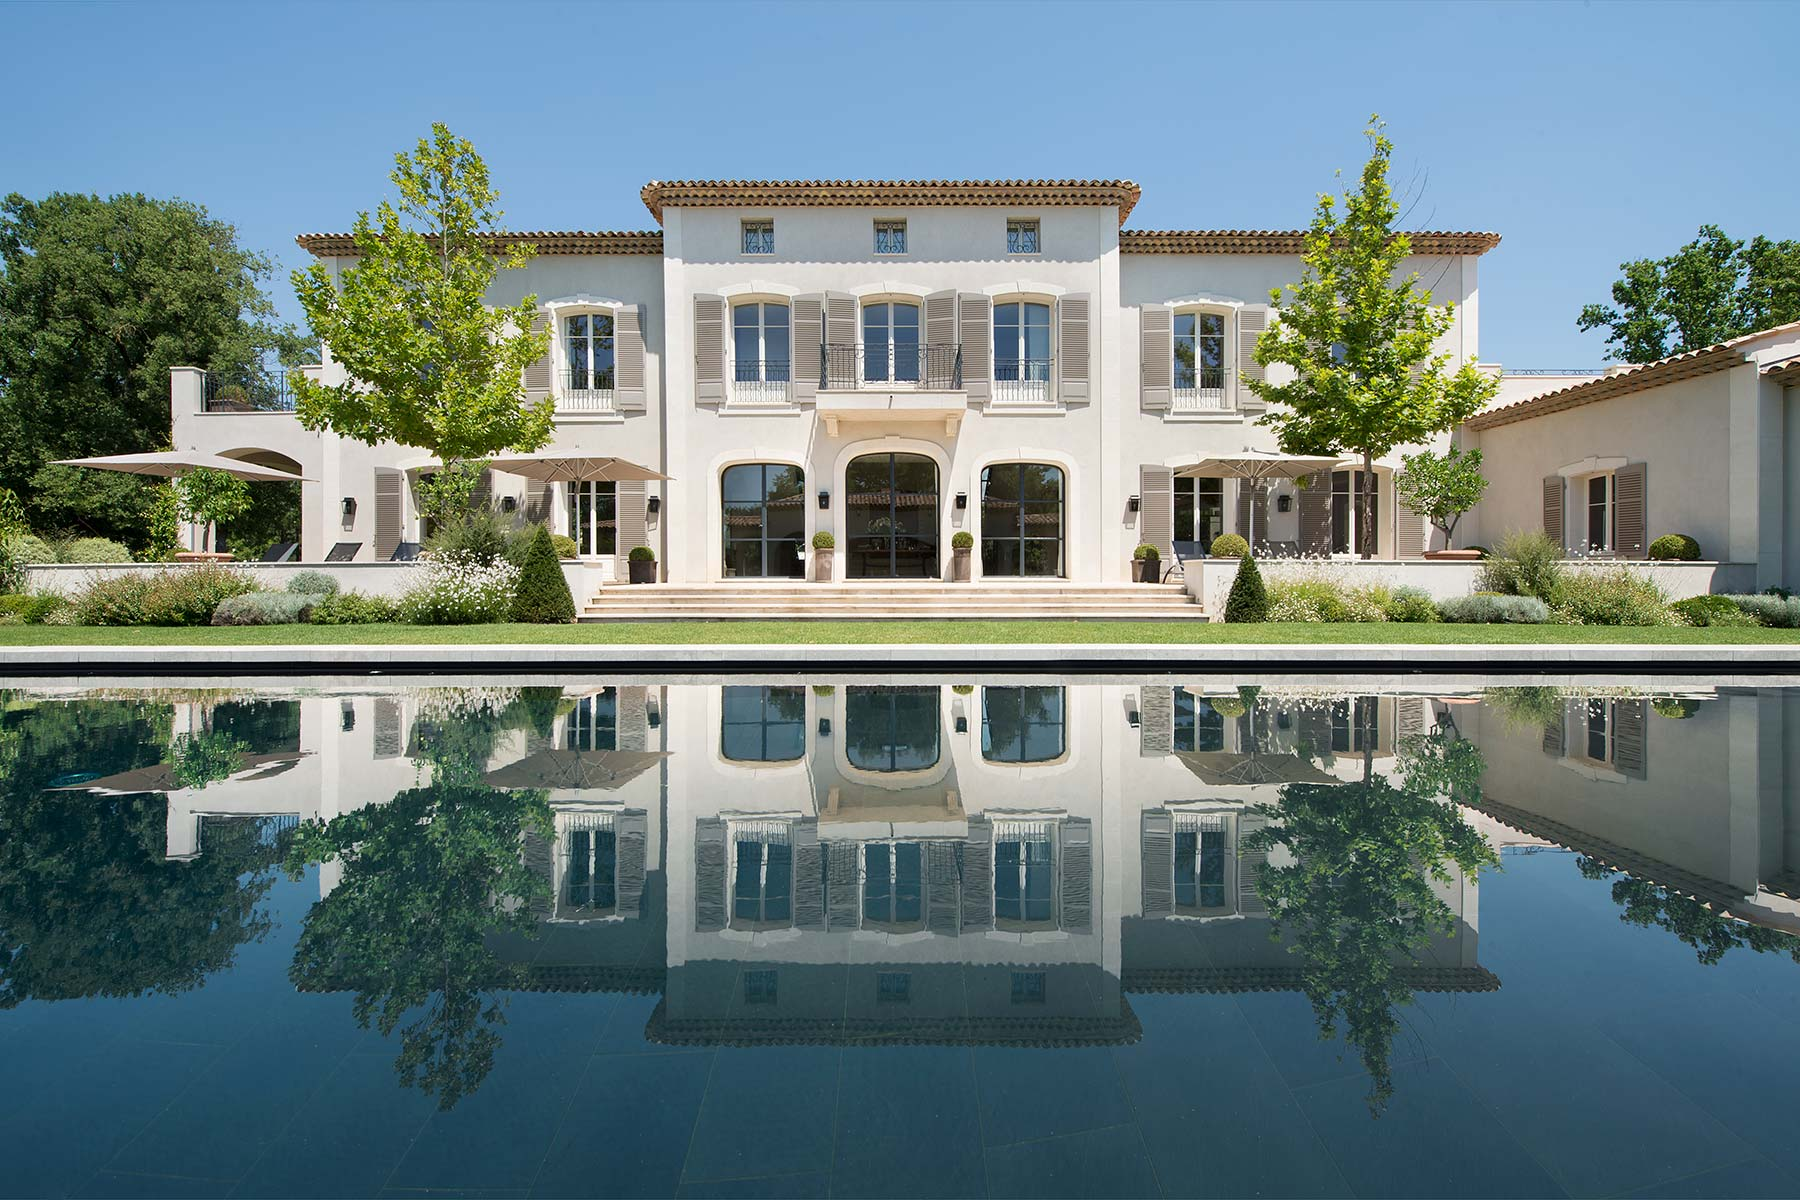 Luxurious Villa Swimming Pool in Cote d Azur France